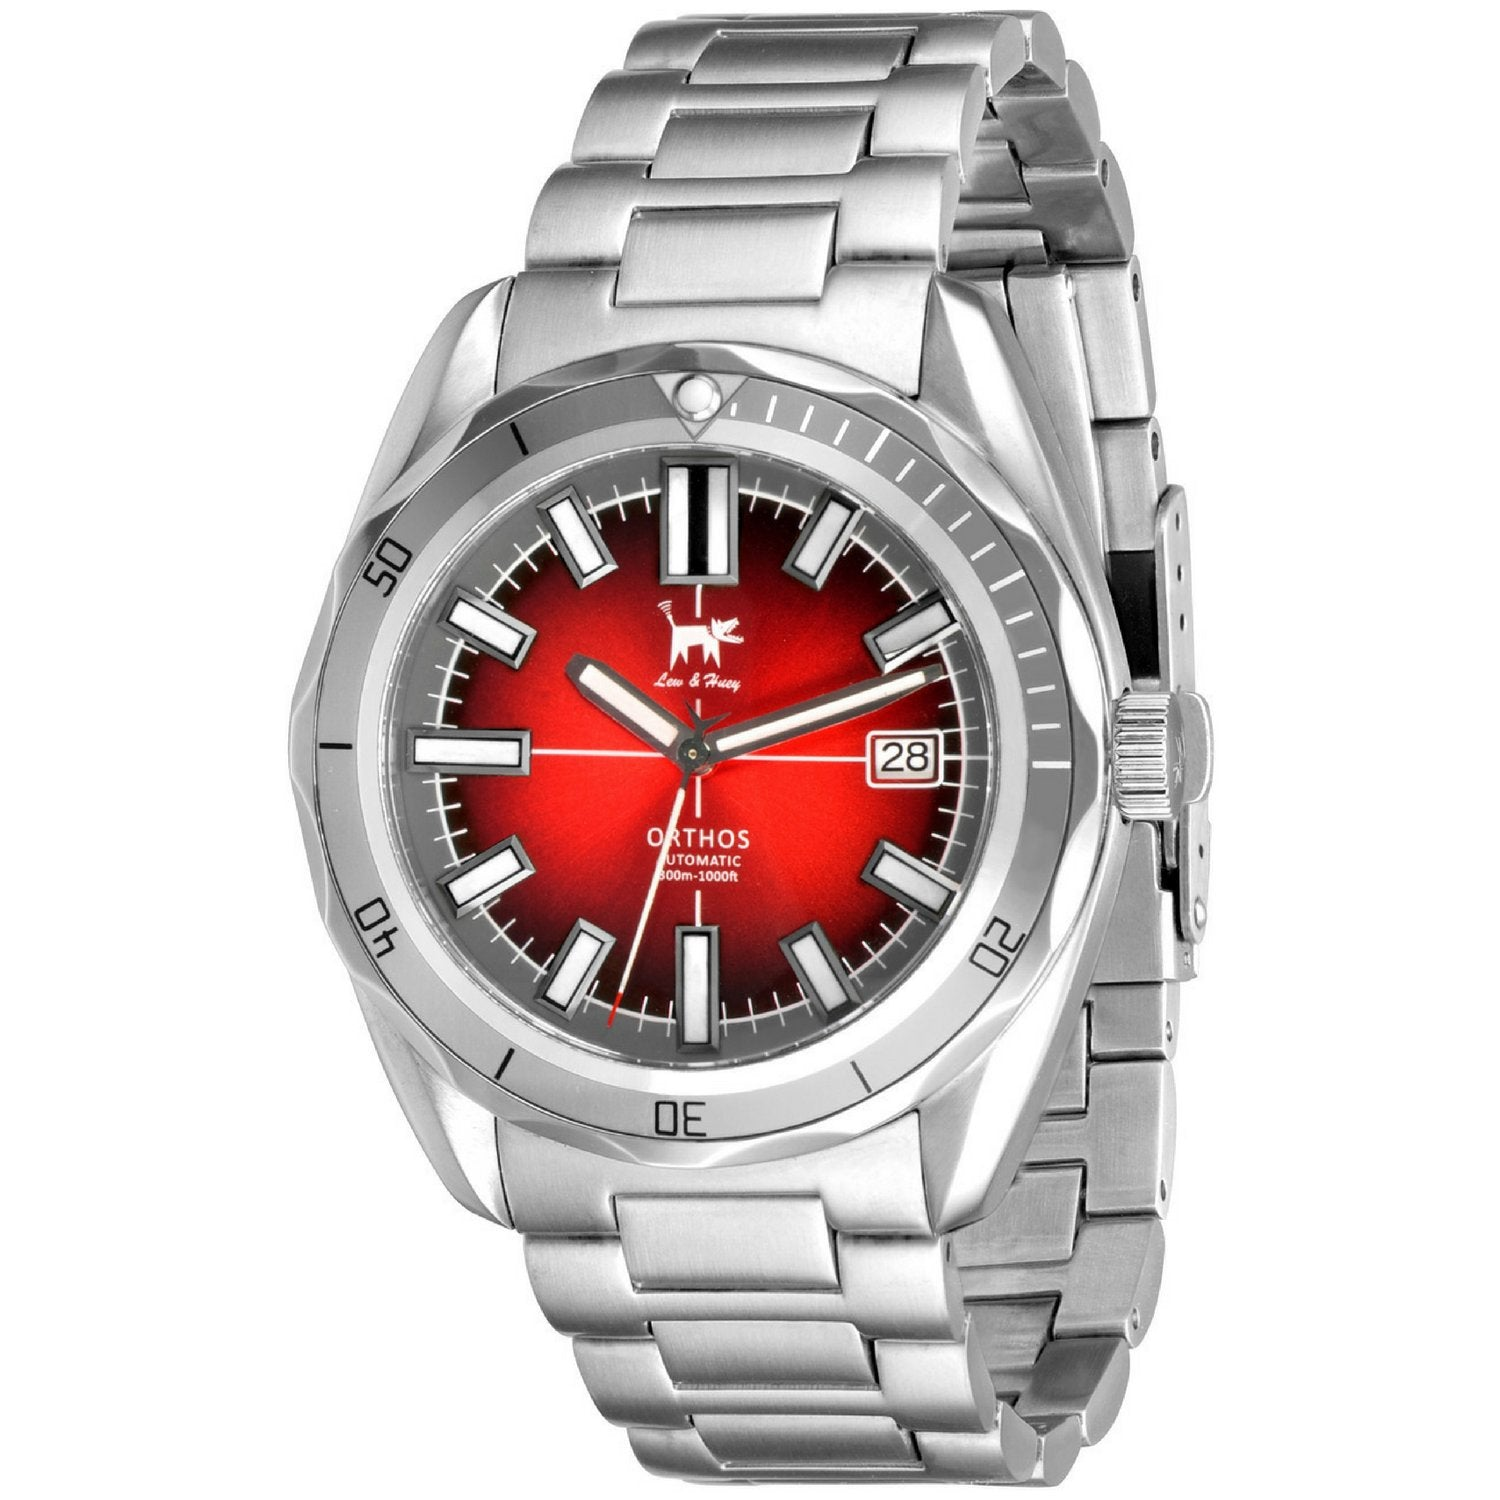 Lew and Huey Orthos Automatic Watch (Red & Grey)